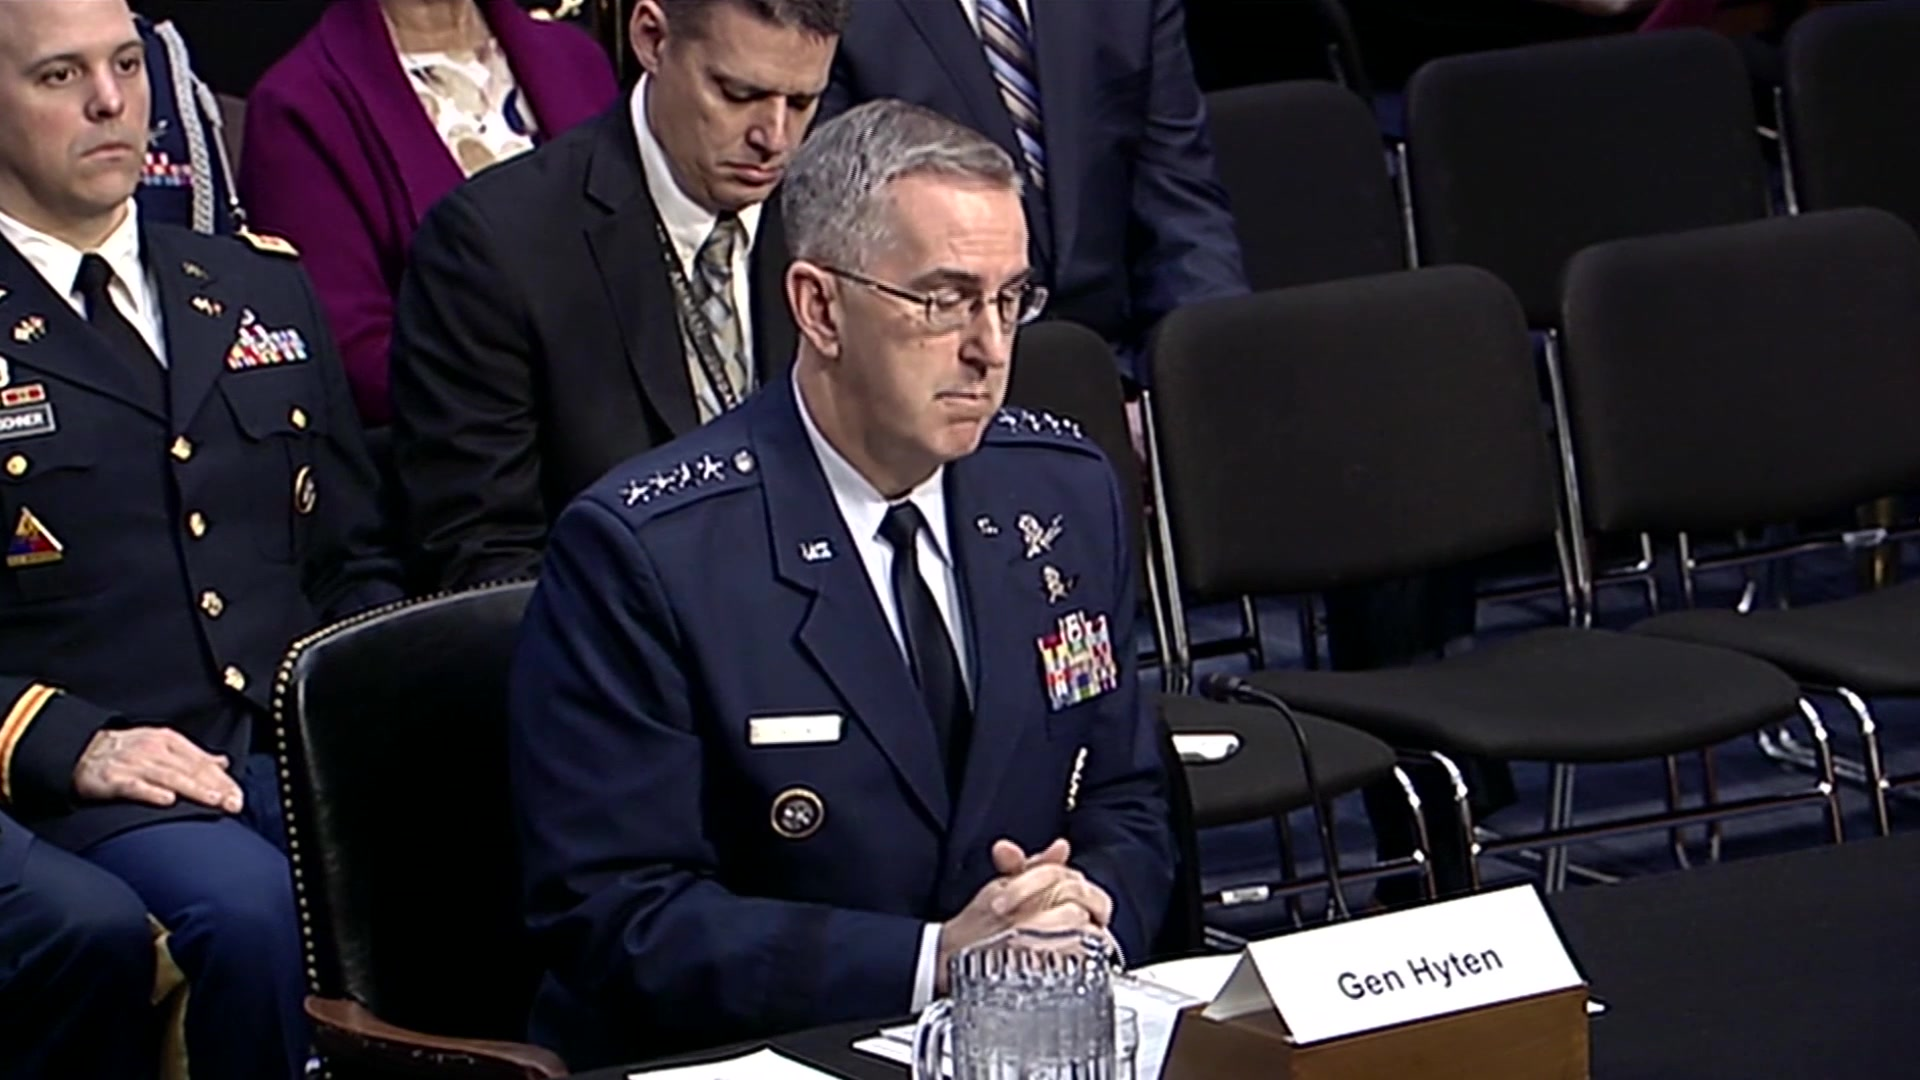 Air Force Gen. John E. Hyten, commander of U.S. Strategic Command, testifies at a hearing of the Senate Armed Services Committee concerning the fiscal year 2019 defense budget request, March 20, 2018.